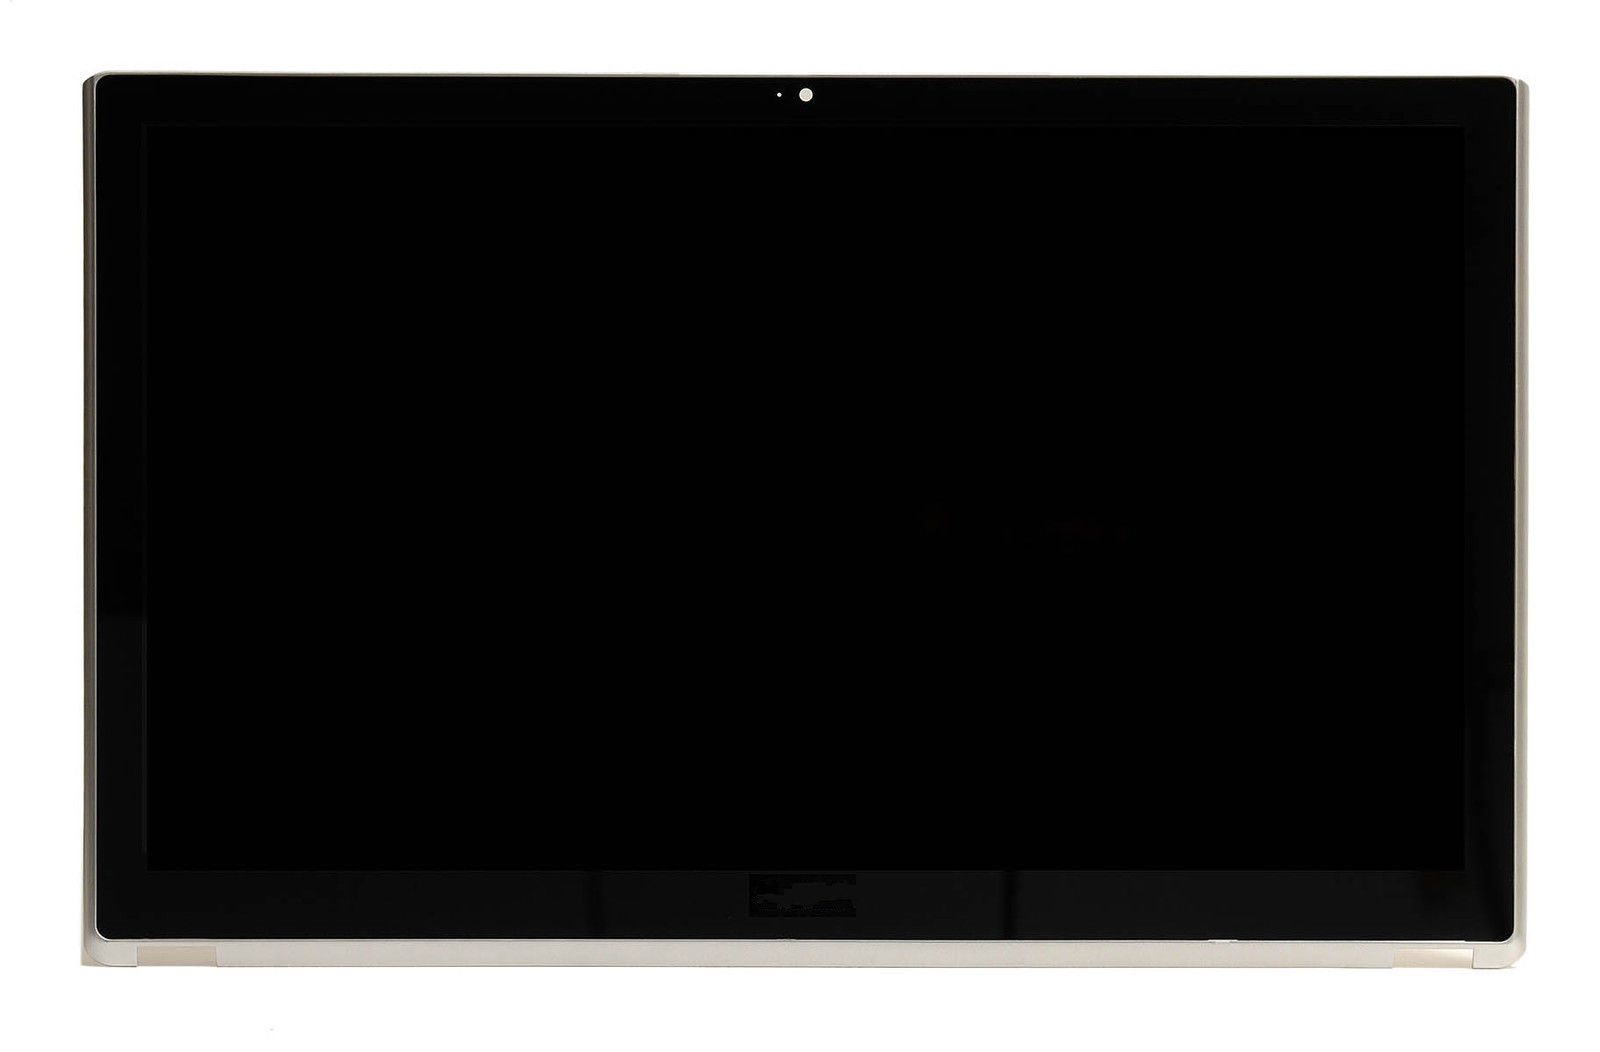 For Acer ASPIRE V5-571PG-9814 MS2361 LCD Touch Screen Assembly With Bezel B156XTN03.1 NewFor Acer ASPIRE V5-571PG-9814 MS2361 LCD Touch Screen Assembly With Bezel B156XTN03.1 New